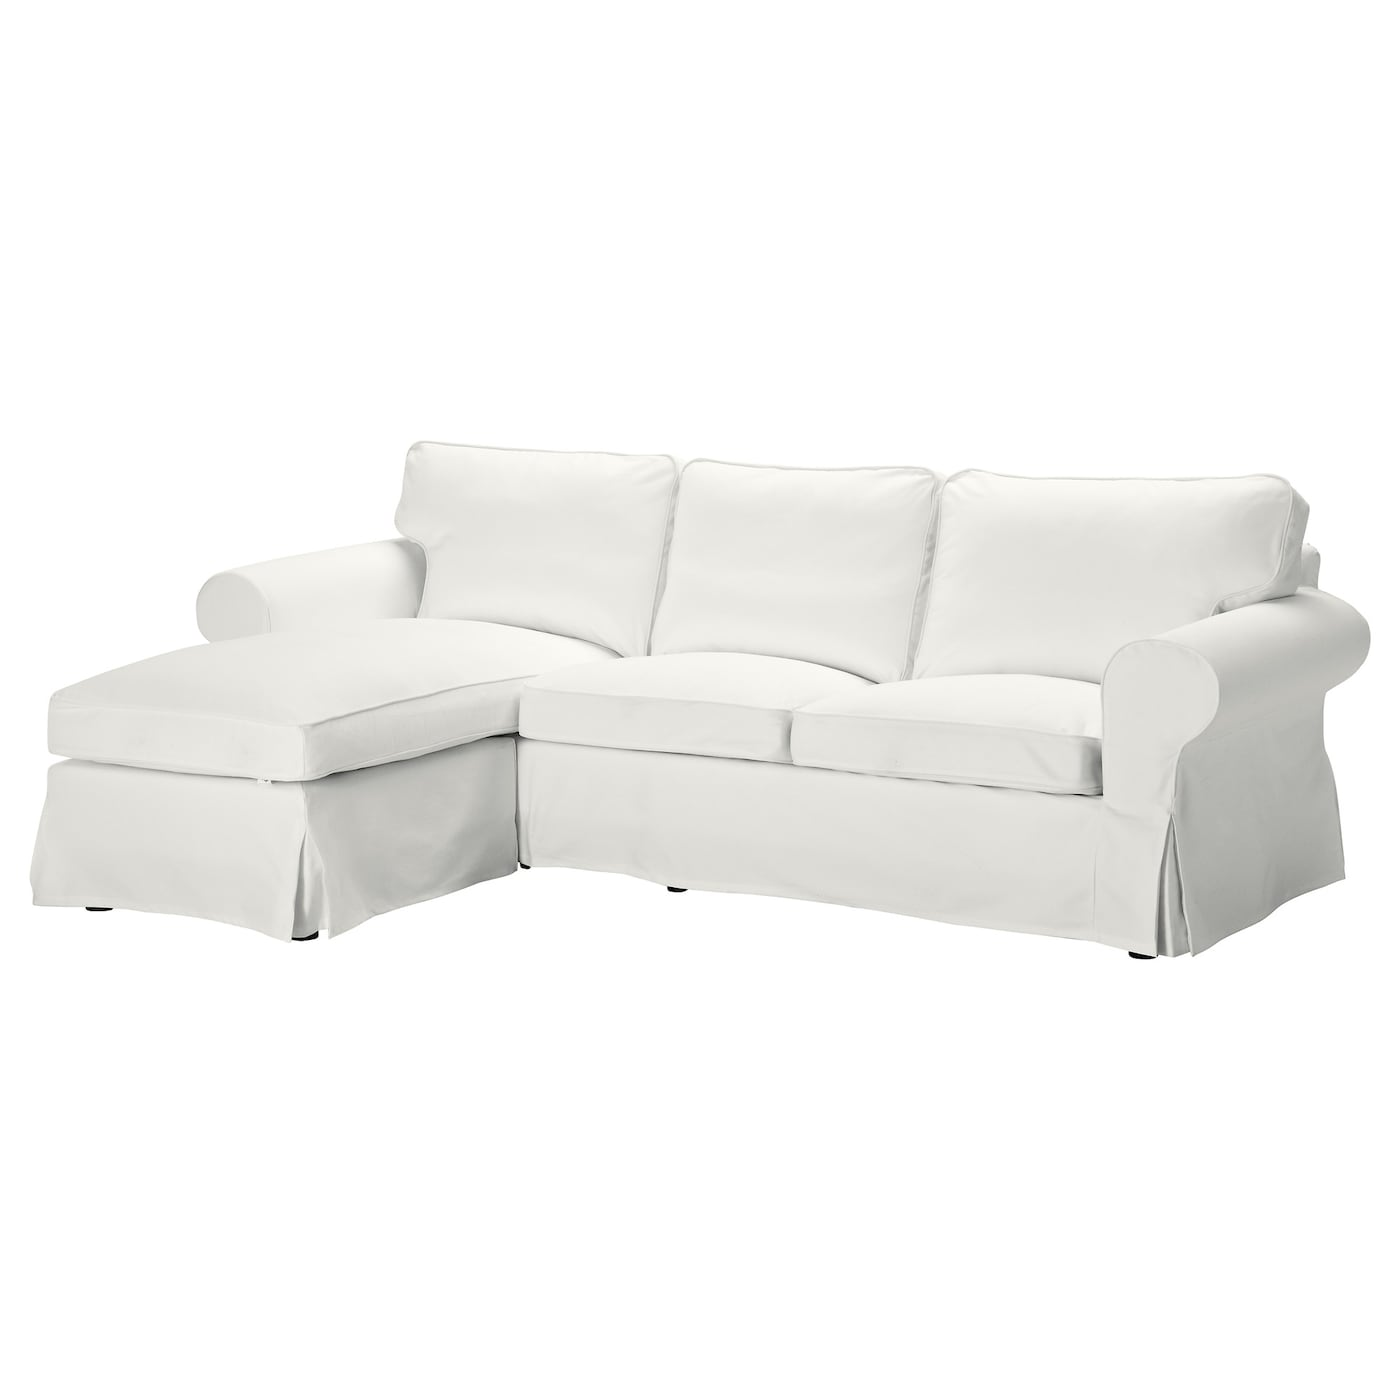 Ektorp two seat sofa and chaise longue blekinge white ikea for Chaise longue sofa